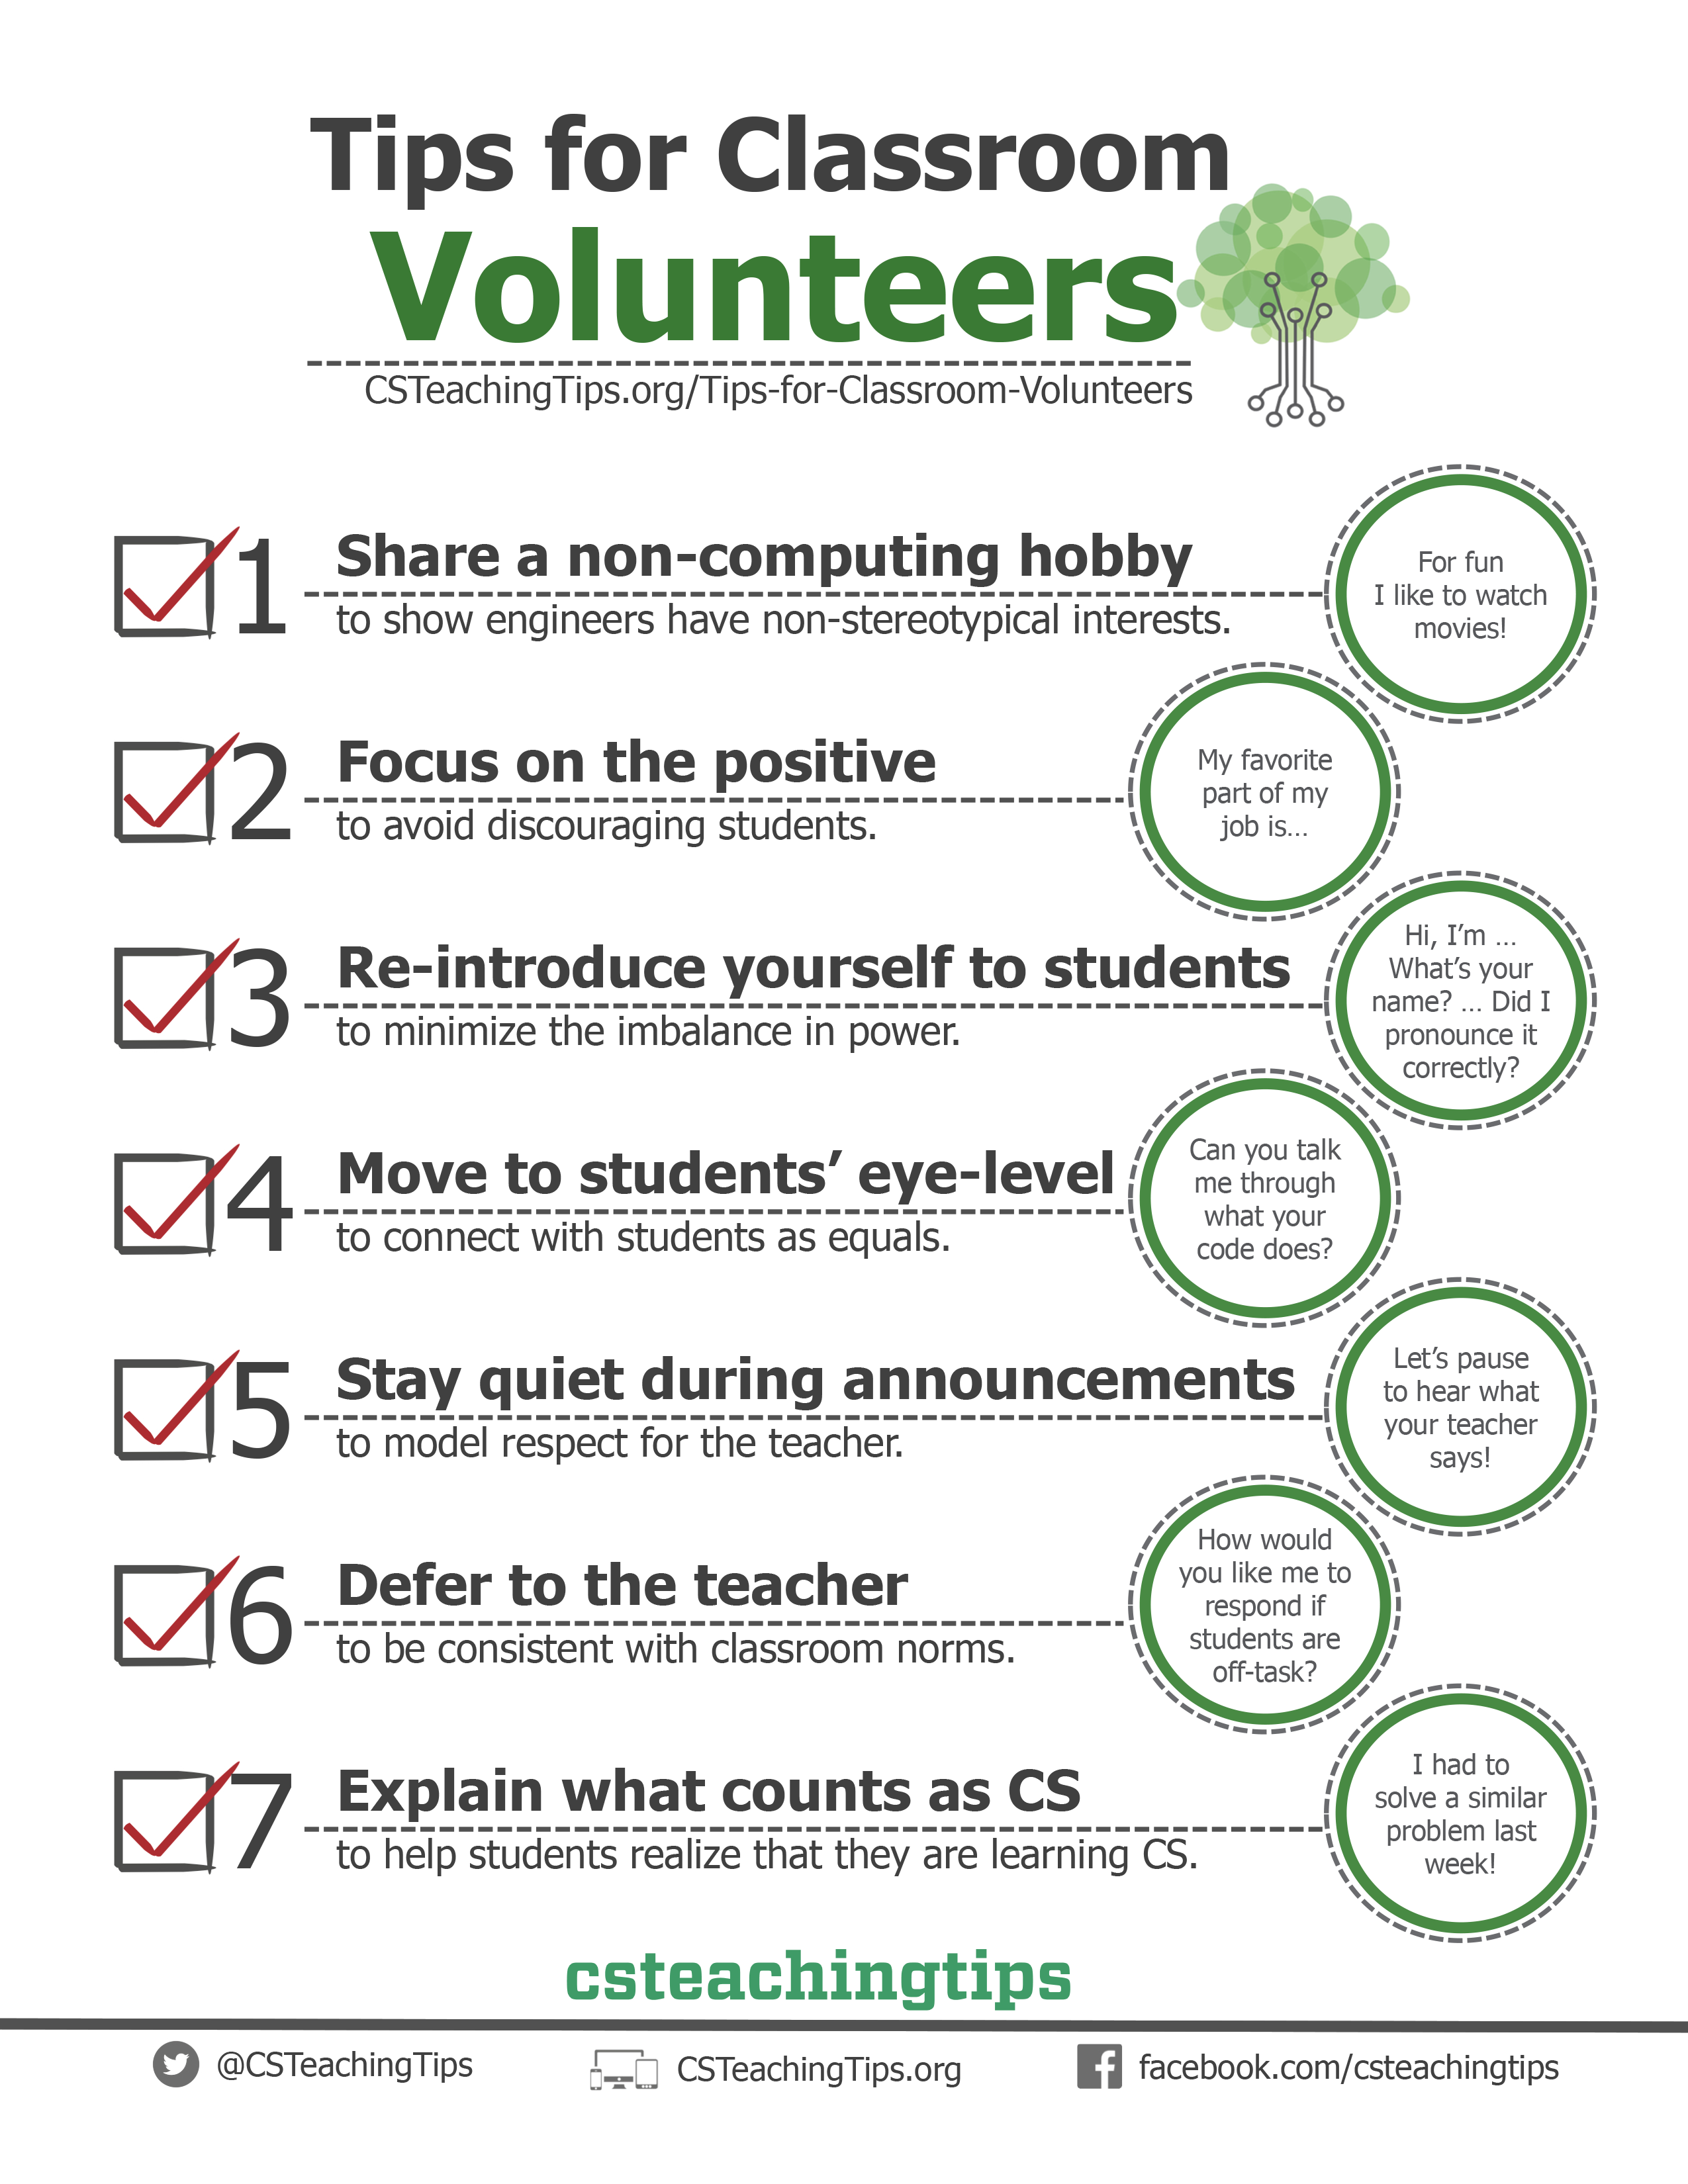 Tips for Classroom Volunteers